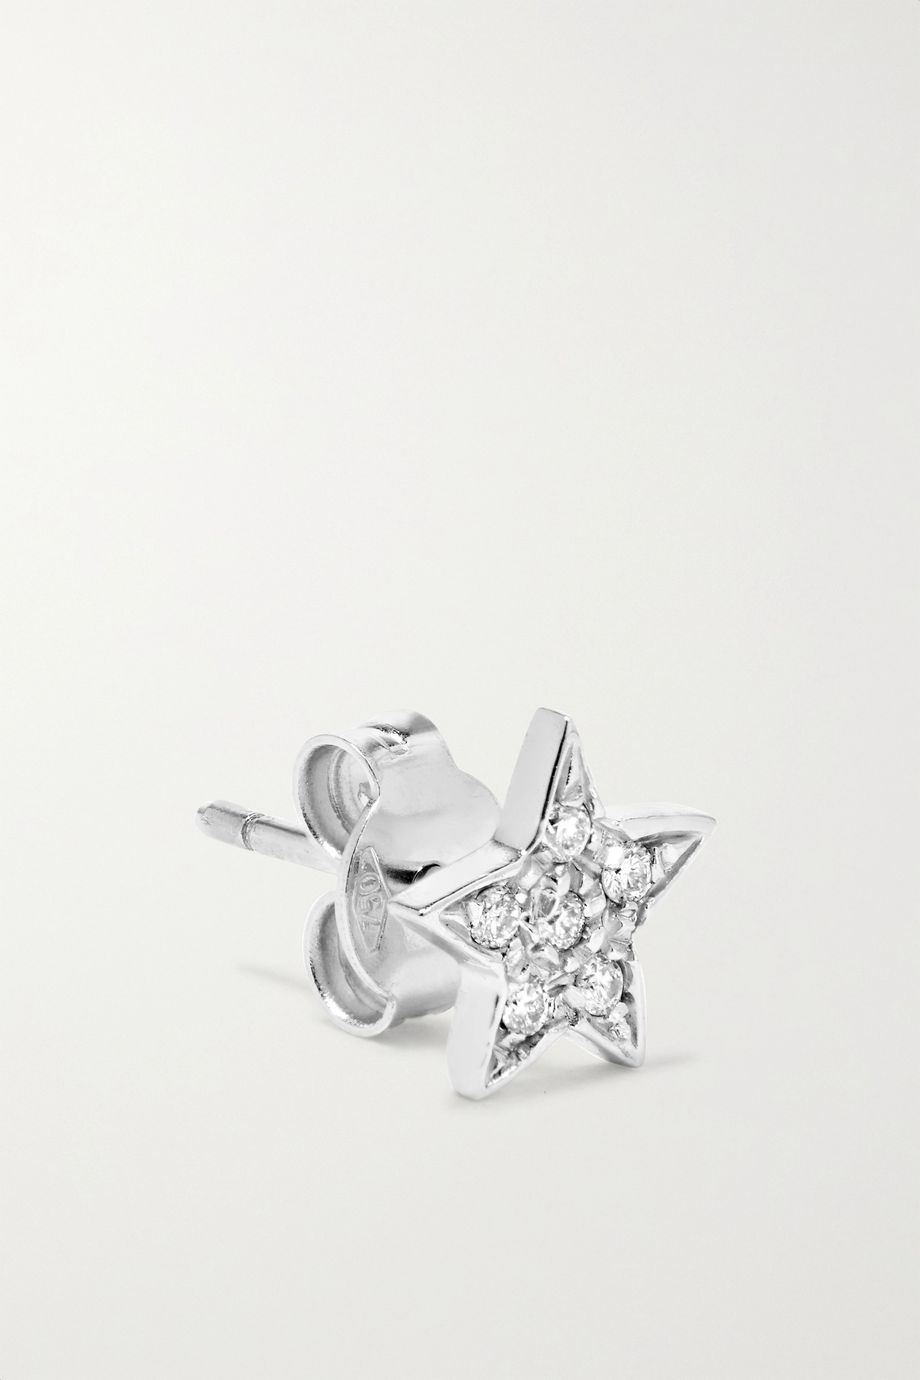 Carolina Bucci Superstellar 18-karat white gold diamond earrings